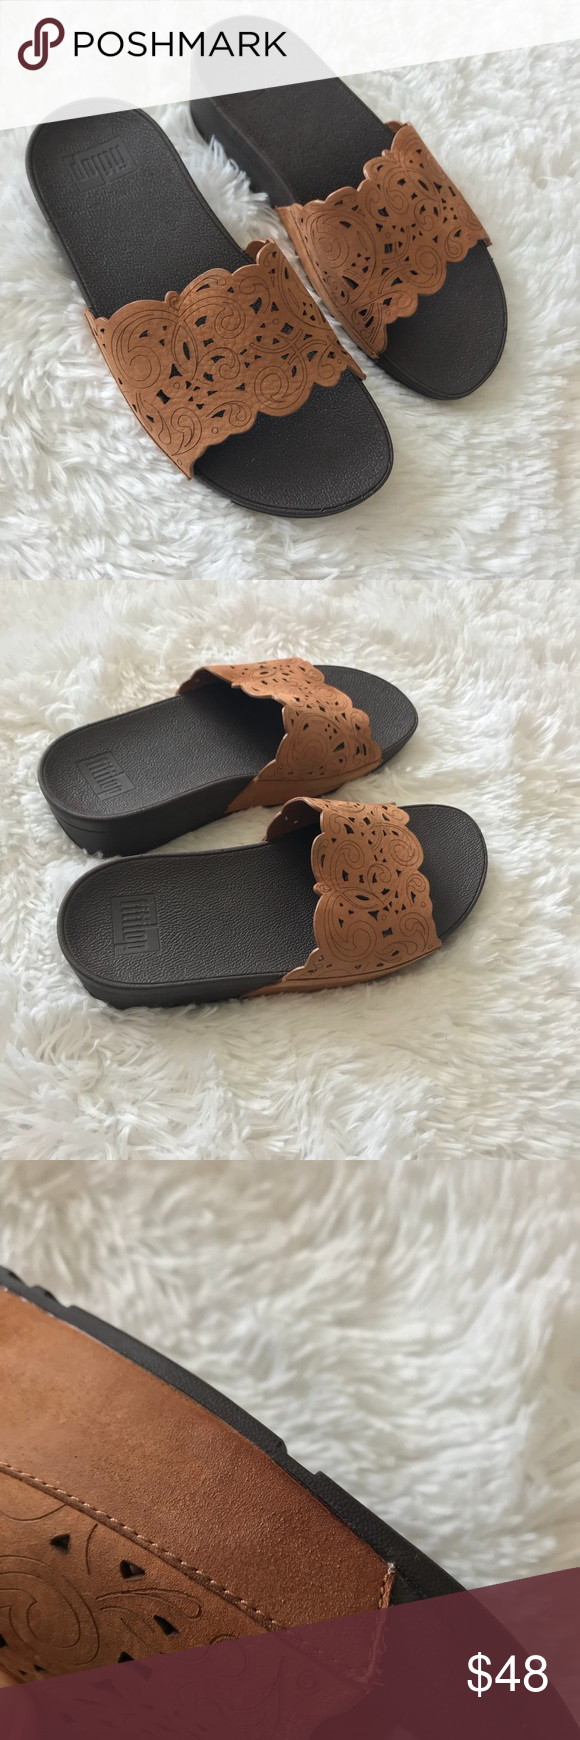 0fb5efeaf39a5 Fitflop Beige Flora Slide Sandals Size 6 - Never worn fitflop beige flora  slide on sandals - Has a little water damage on one sandal as shown in  picture but ...